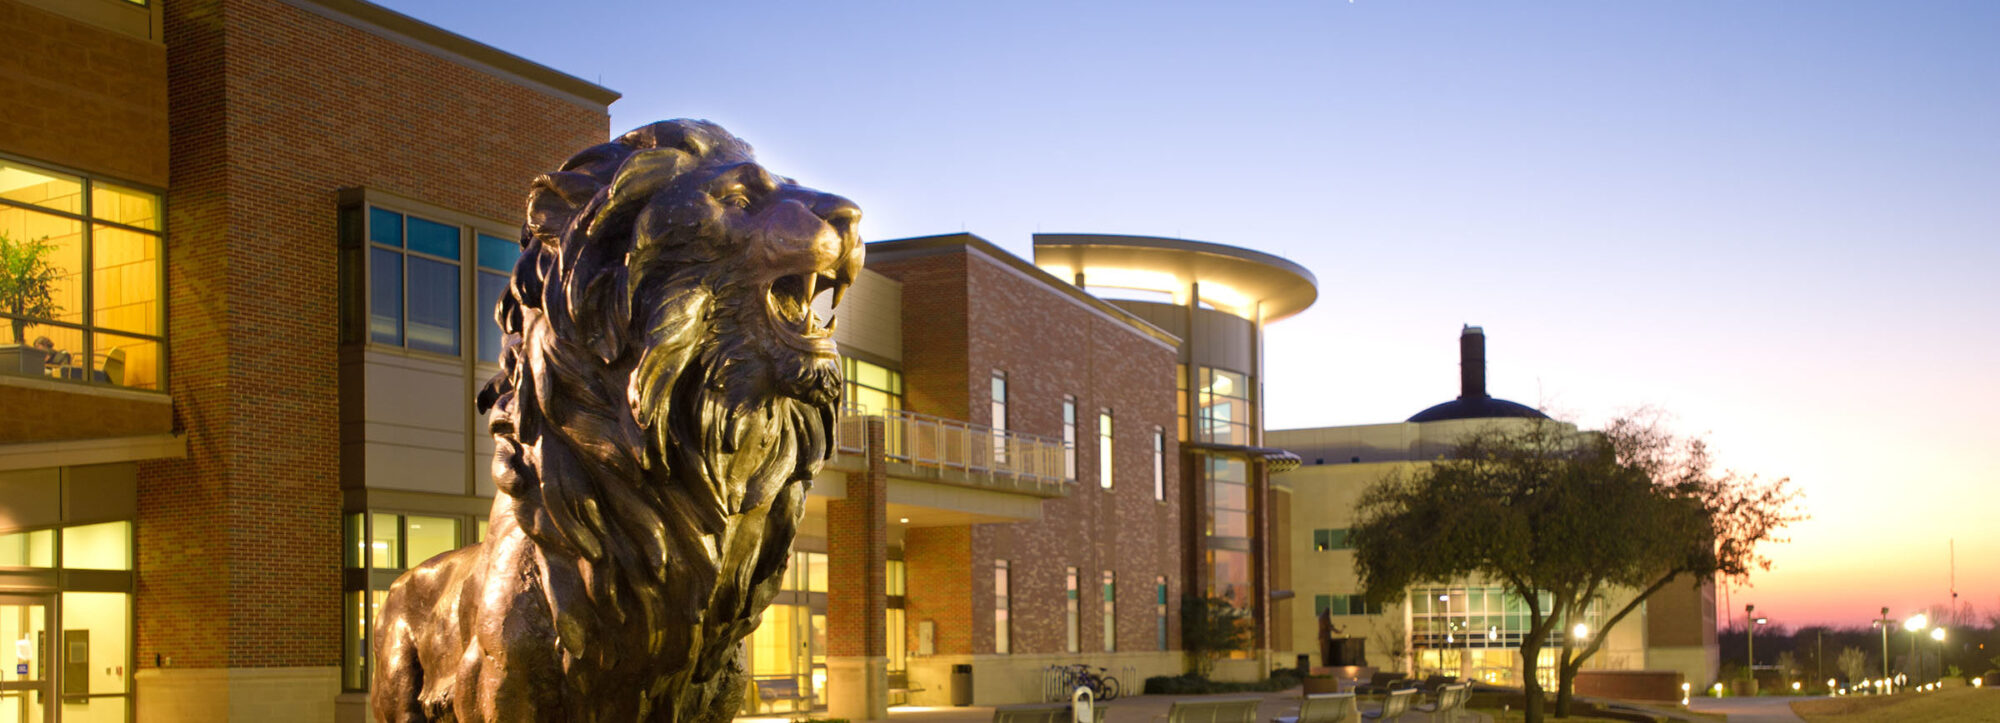 Lion statue at A&M-Commerce